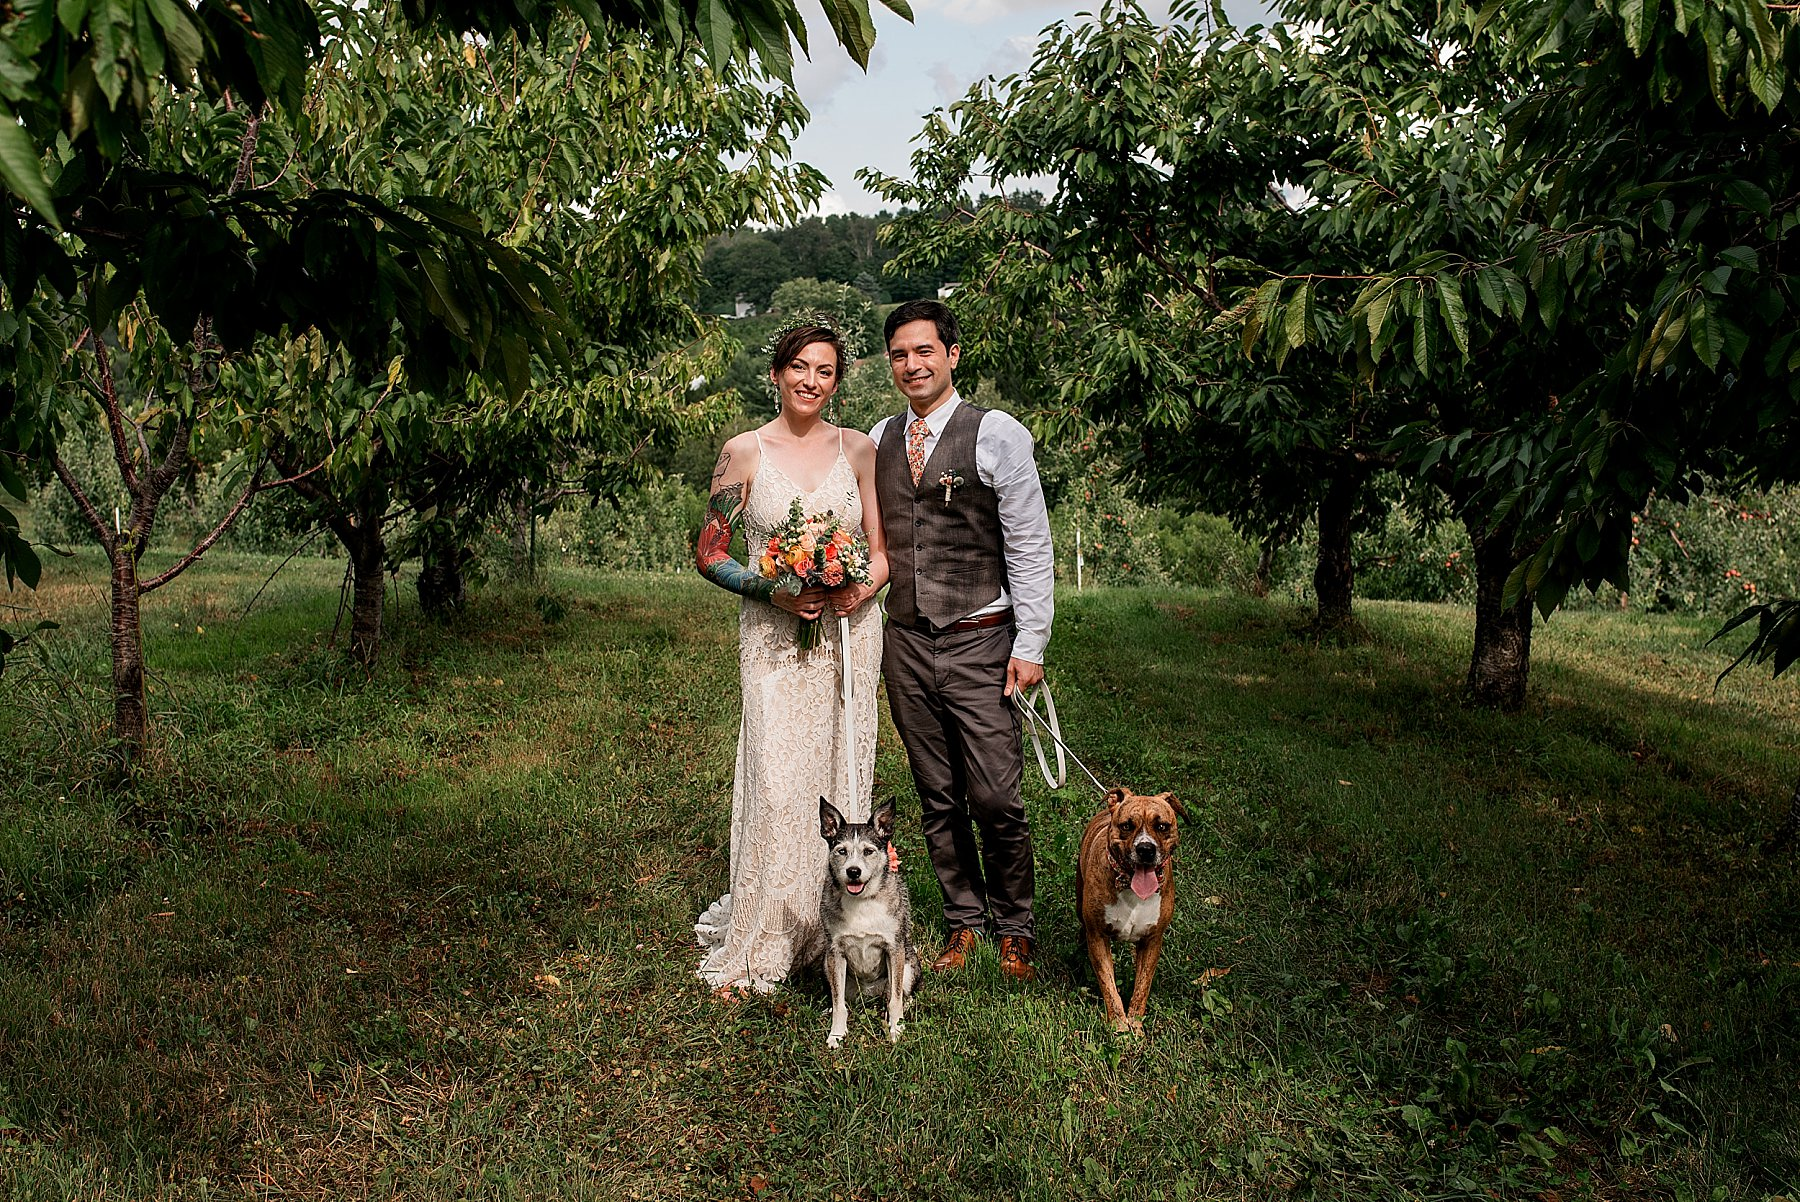 bride and groom on their wedding day at March Farms with their dogs